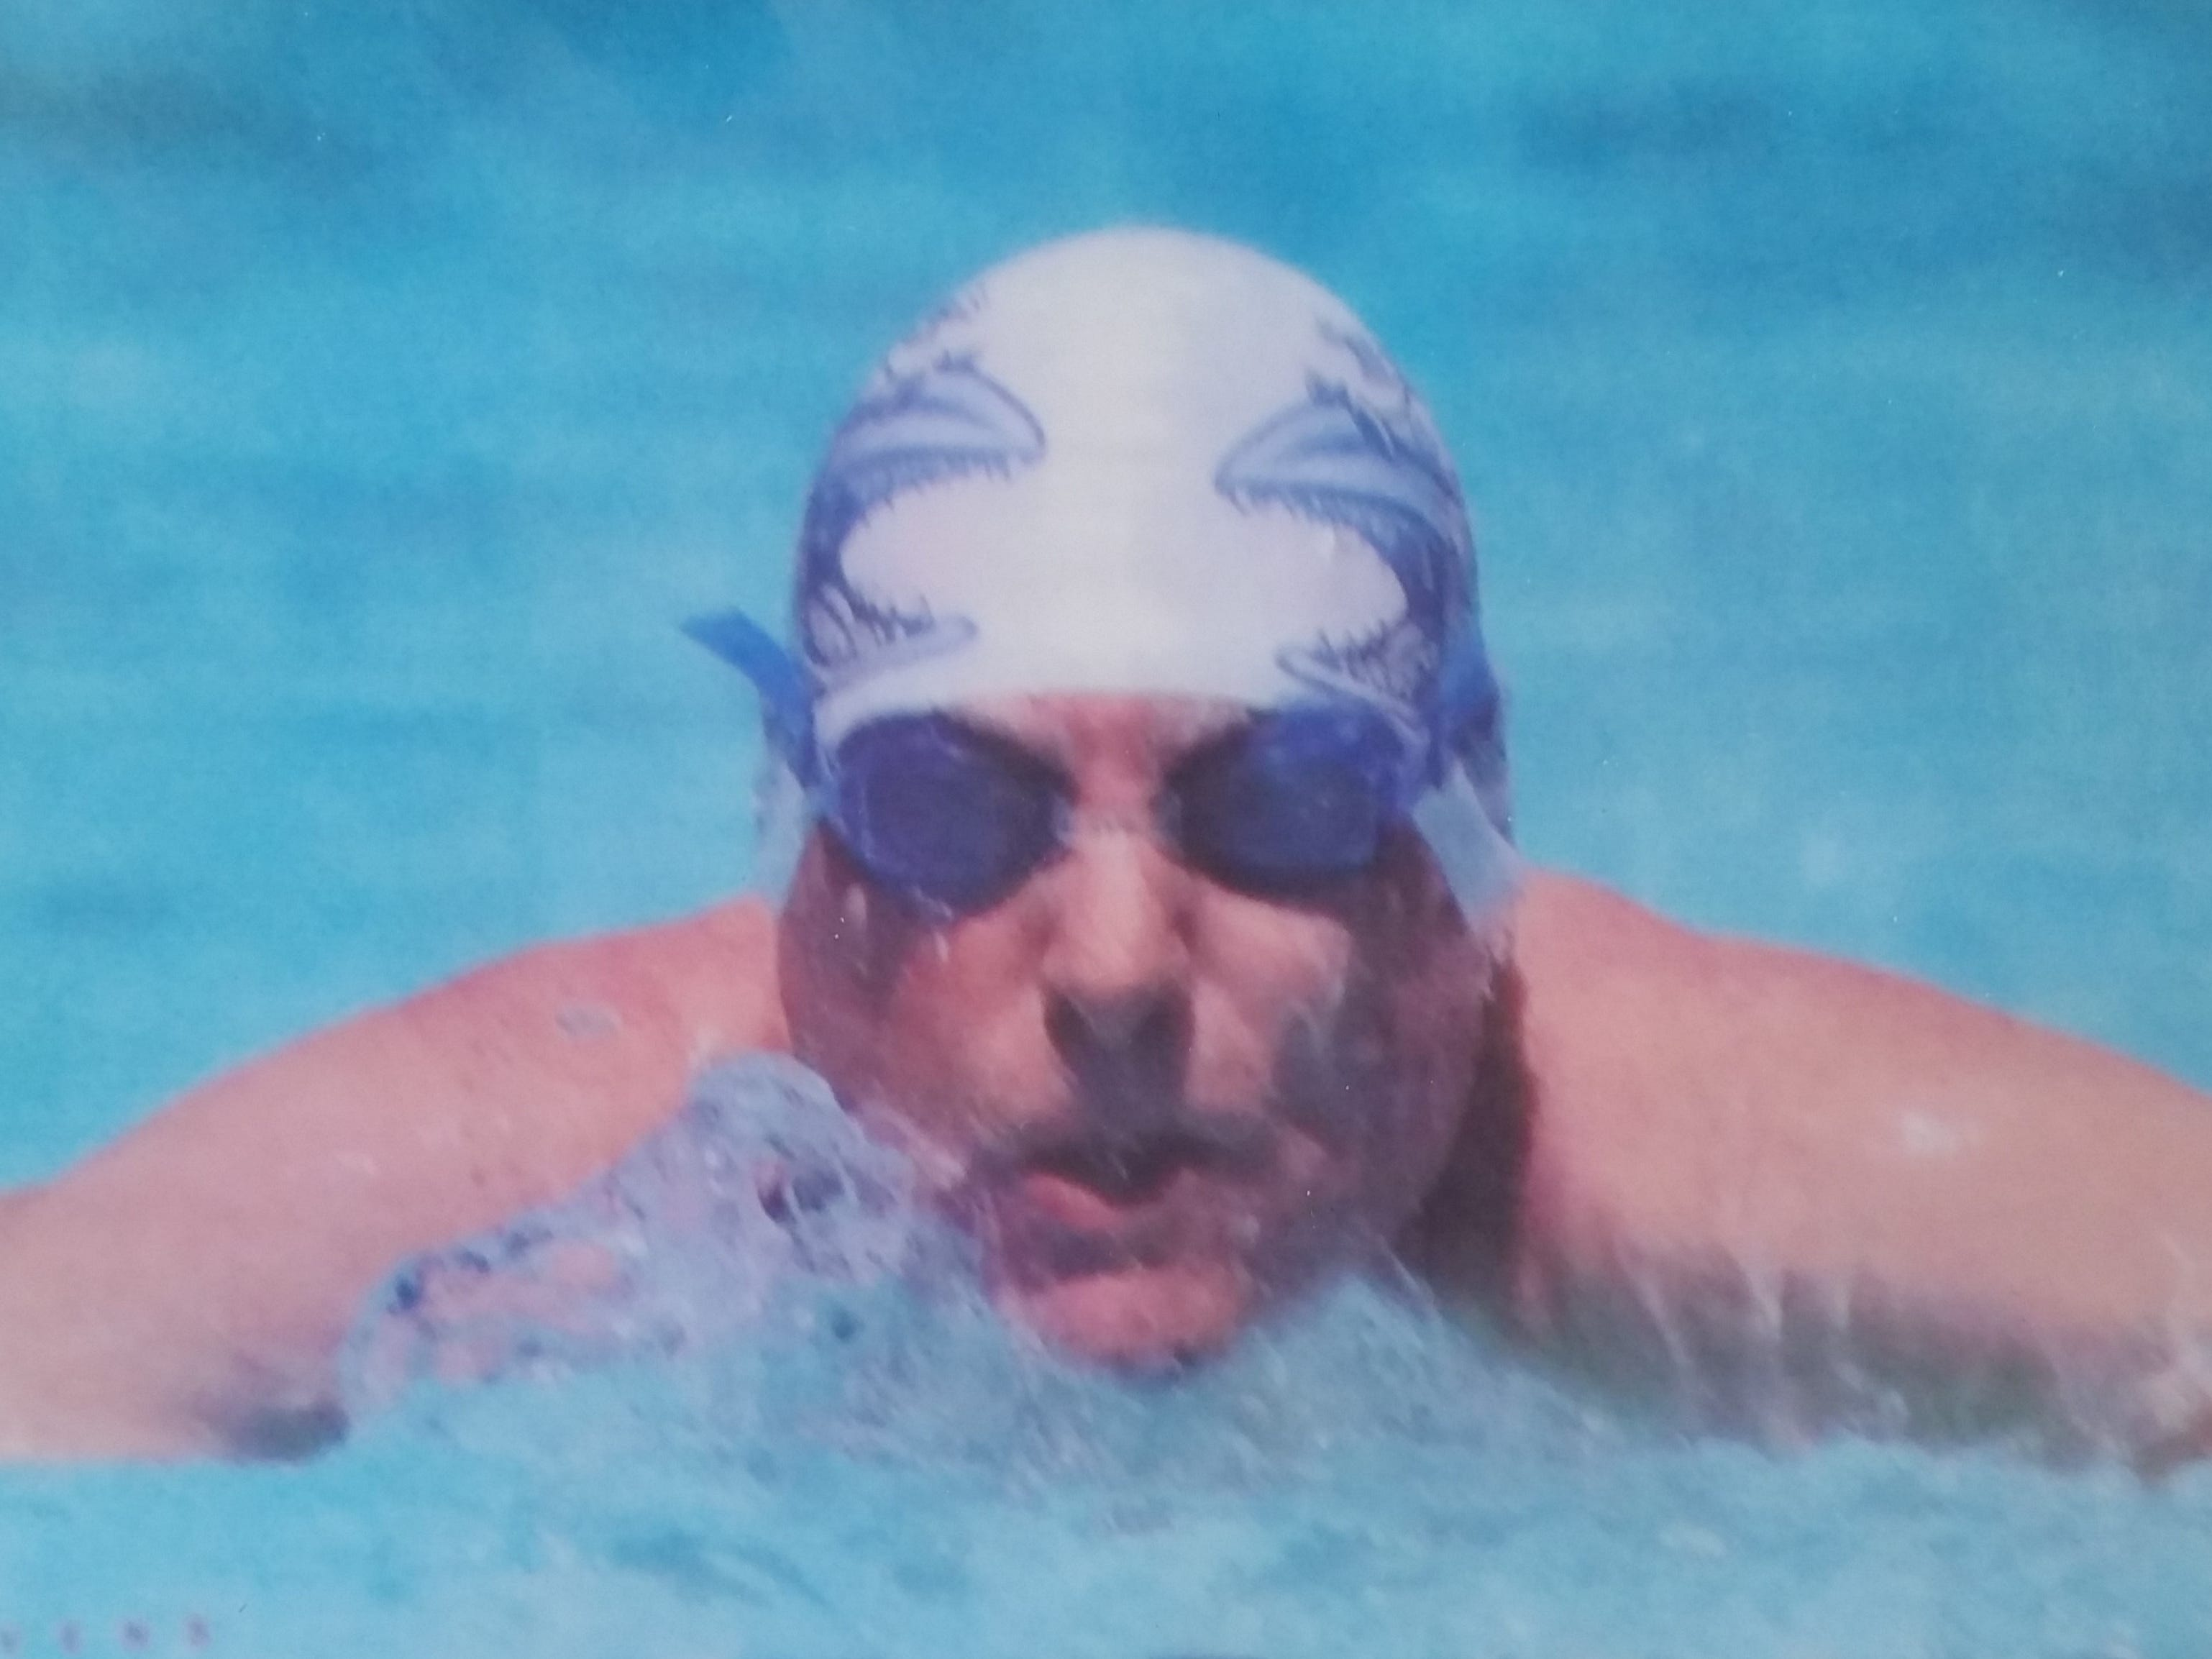 Paul Lowry brought attention to Southern Utah by coaching and writing stories. He also swam competitively, too.